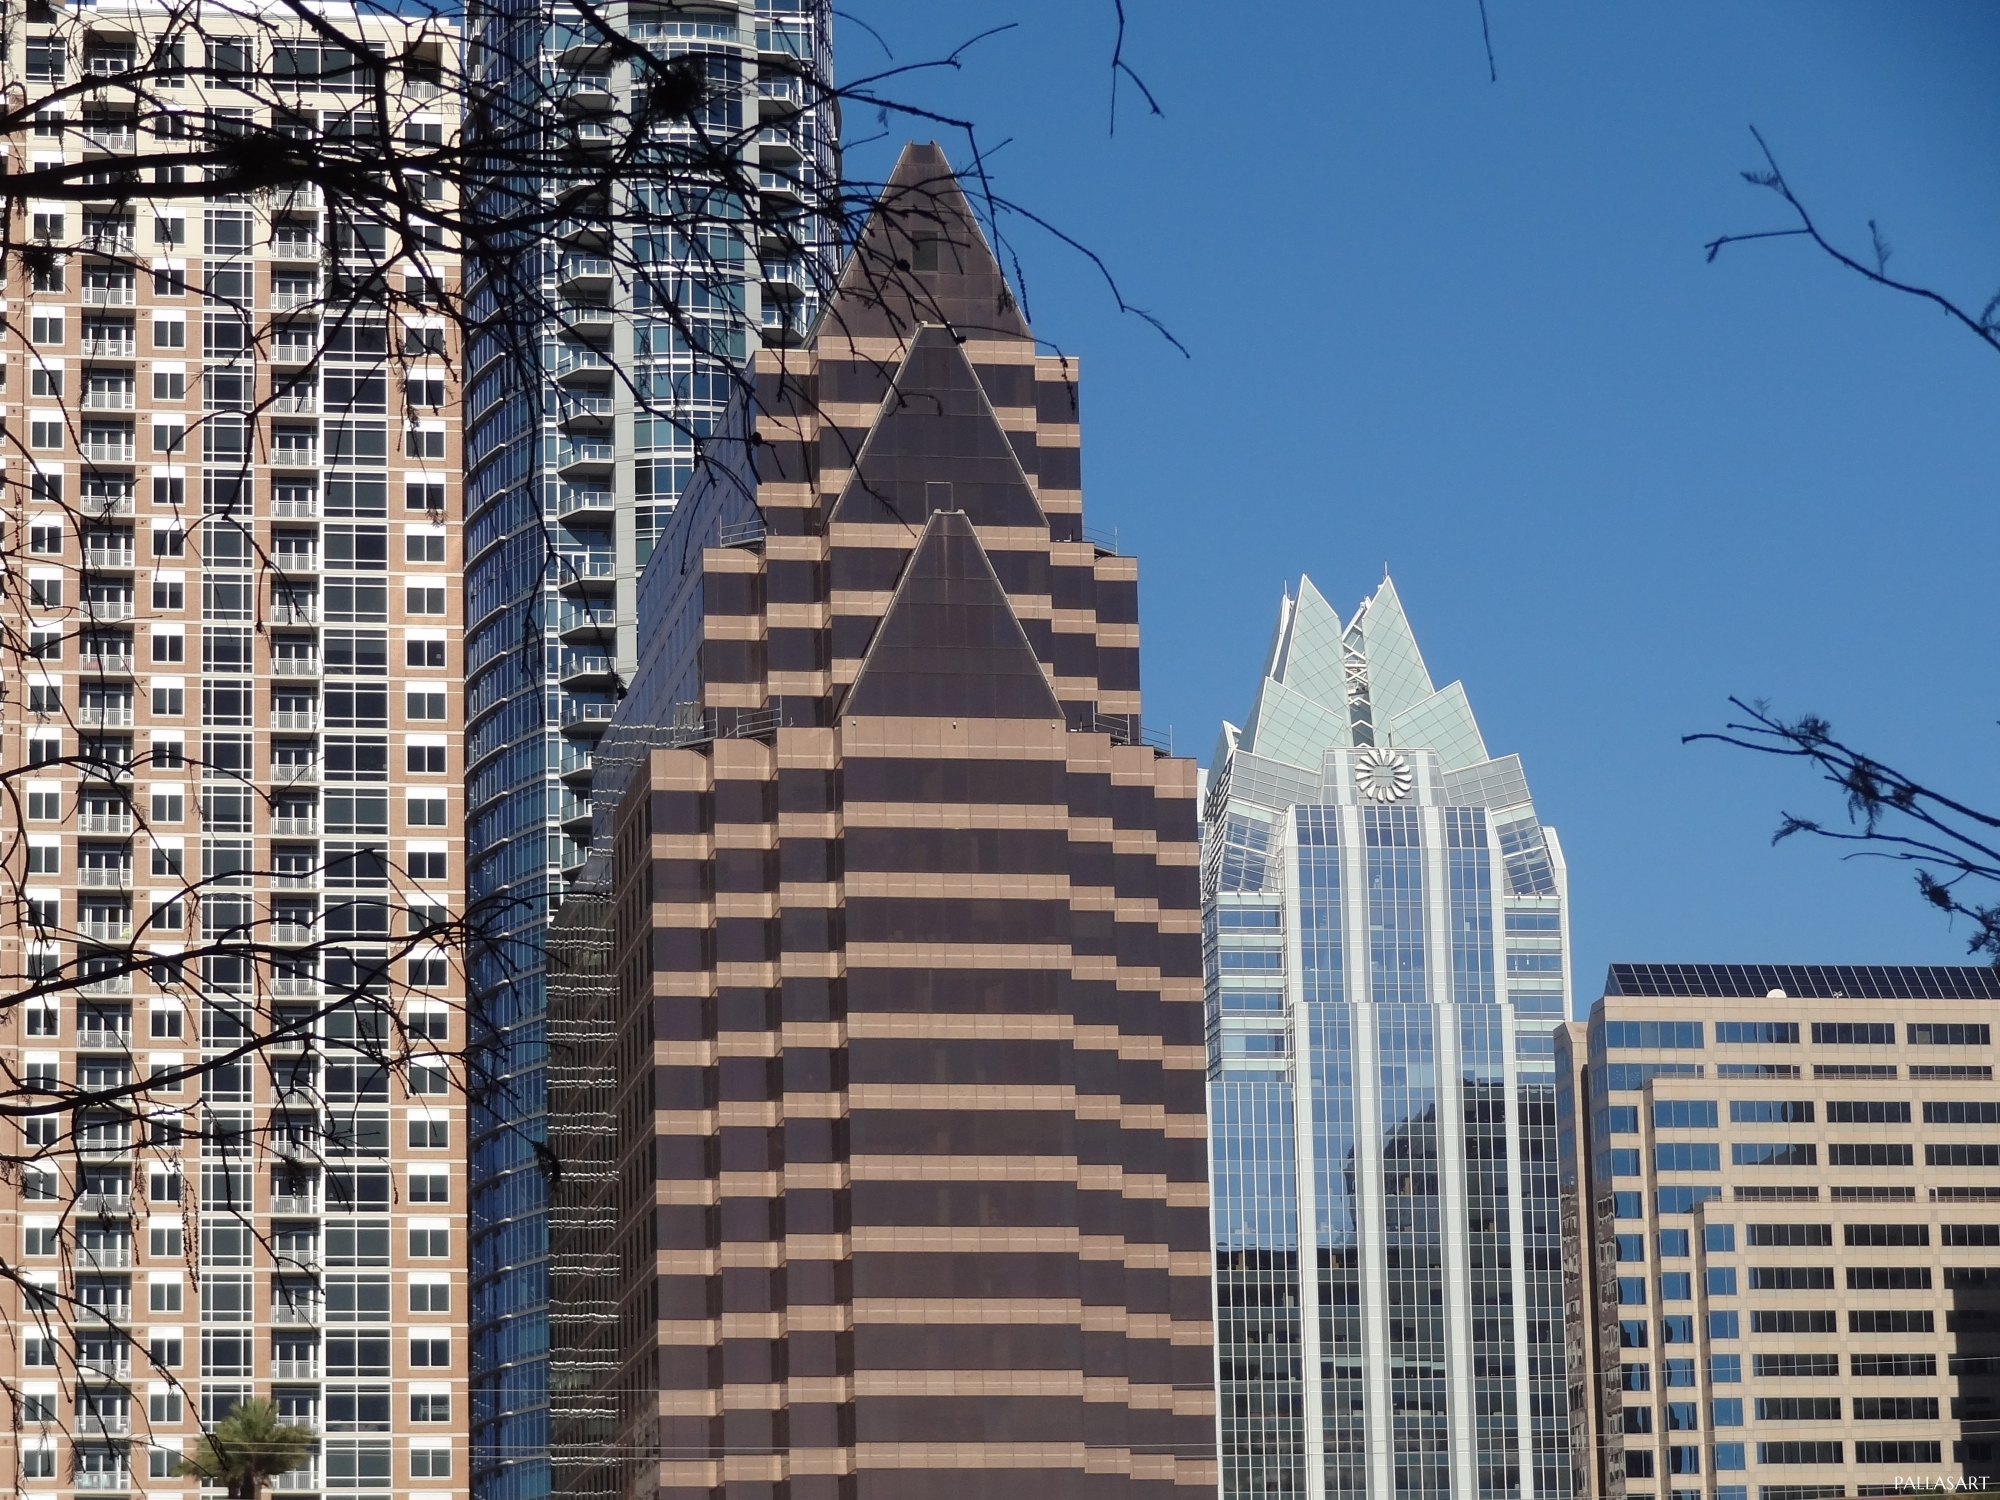 100 Congress Avenue, and Frost Bank Tower in Austin